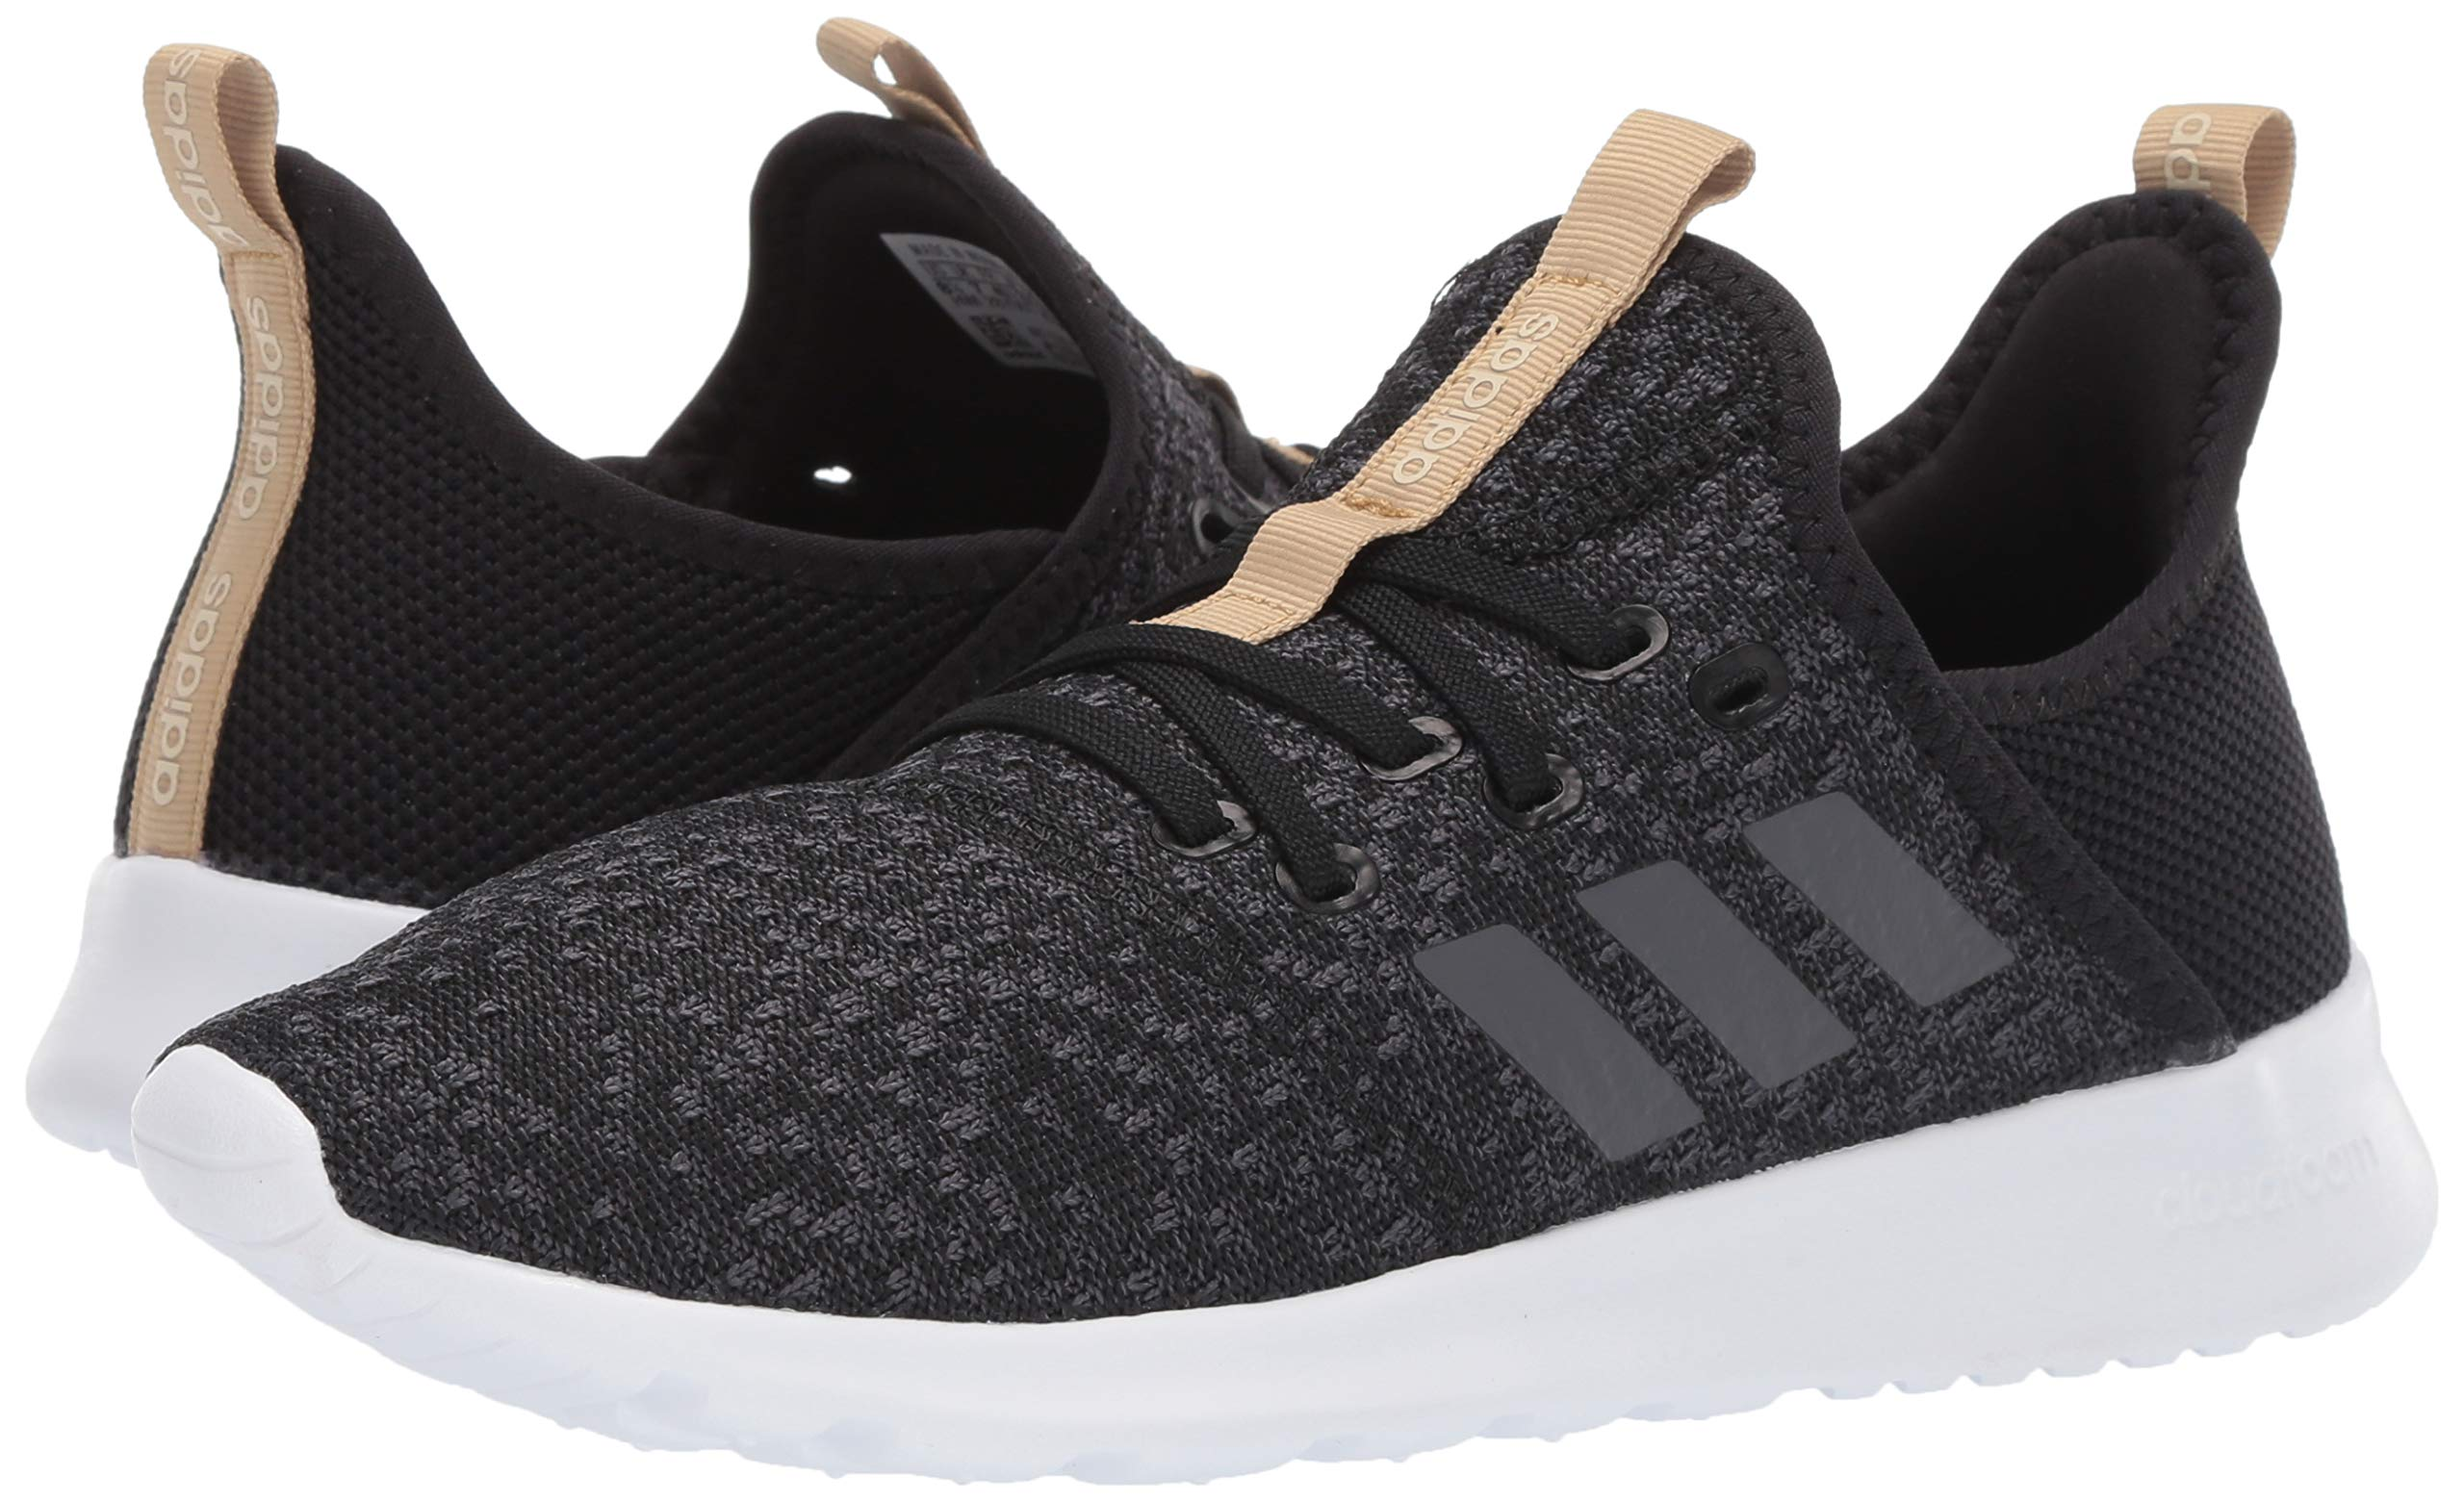 adidas Women's Cloudfoam Pure, Grey/Black, 5.5 M US by adidas (Image #5)